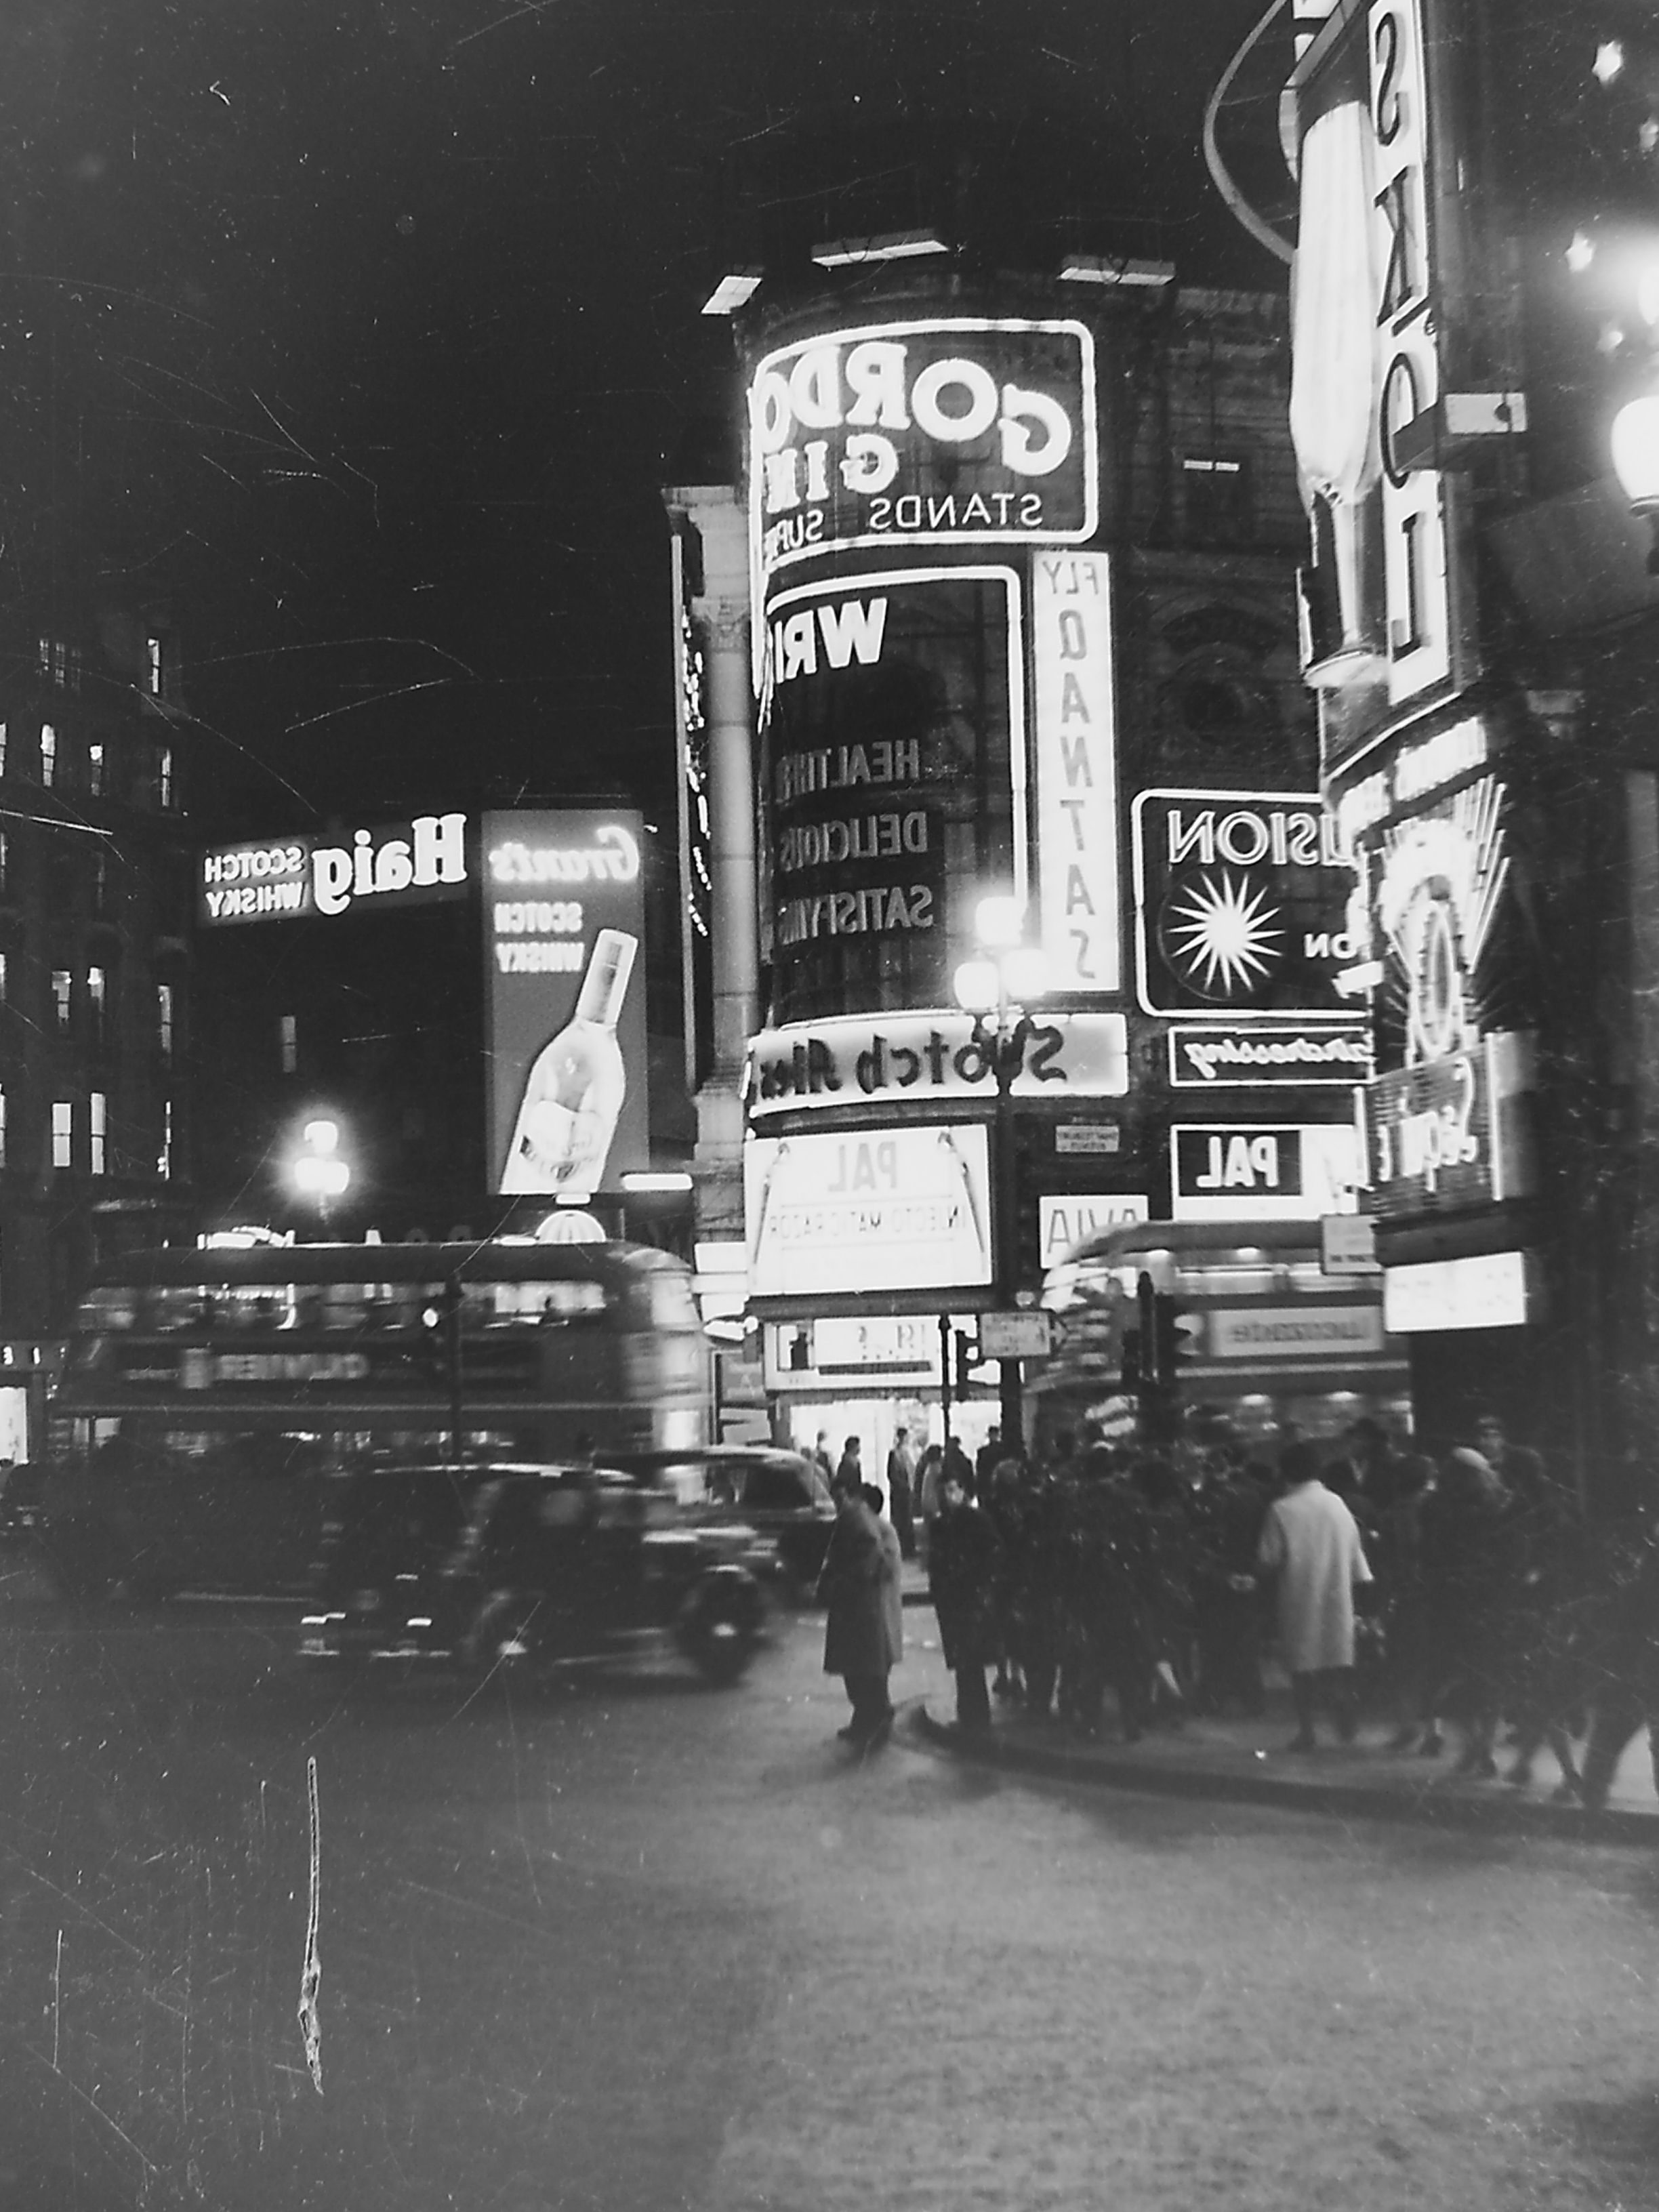 London 50's or 60's